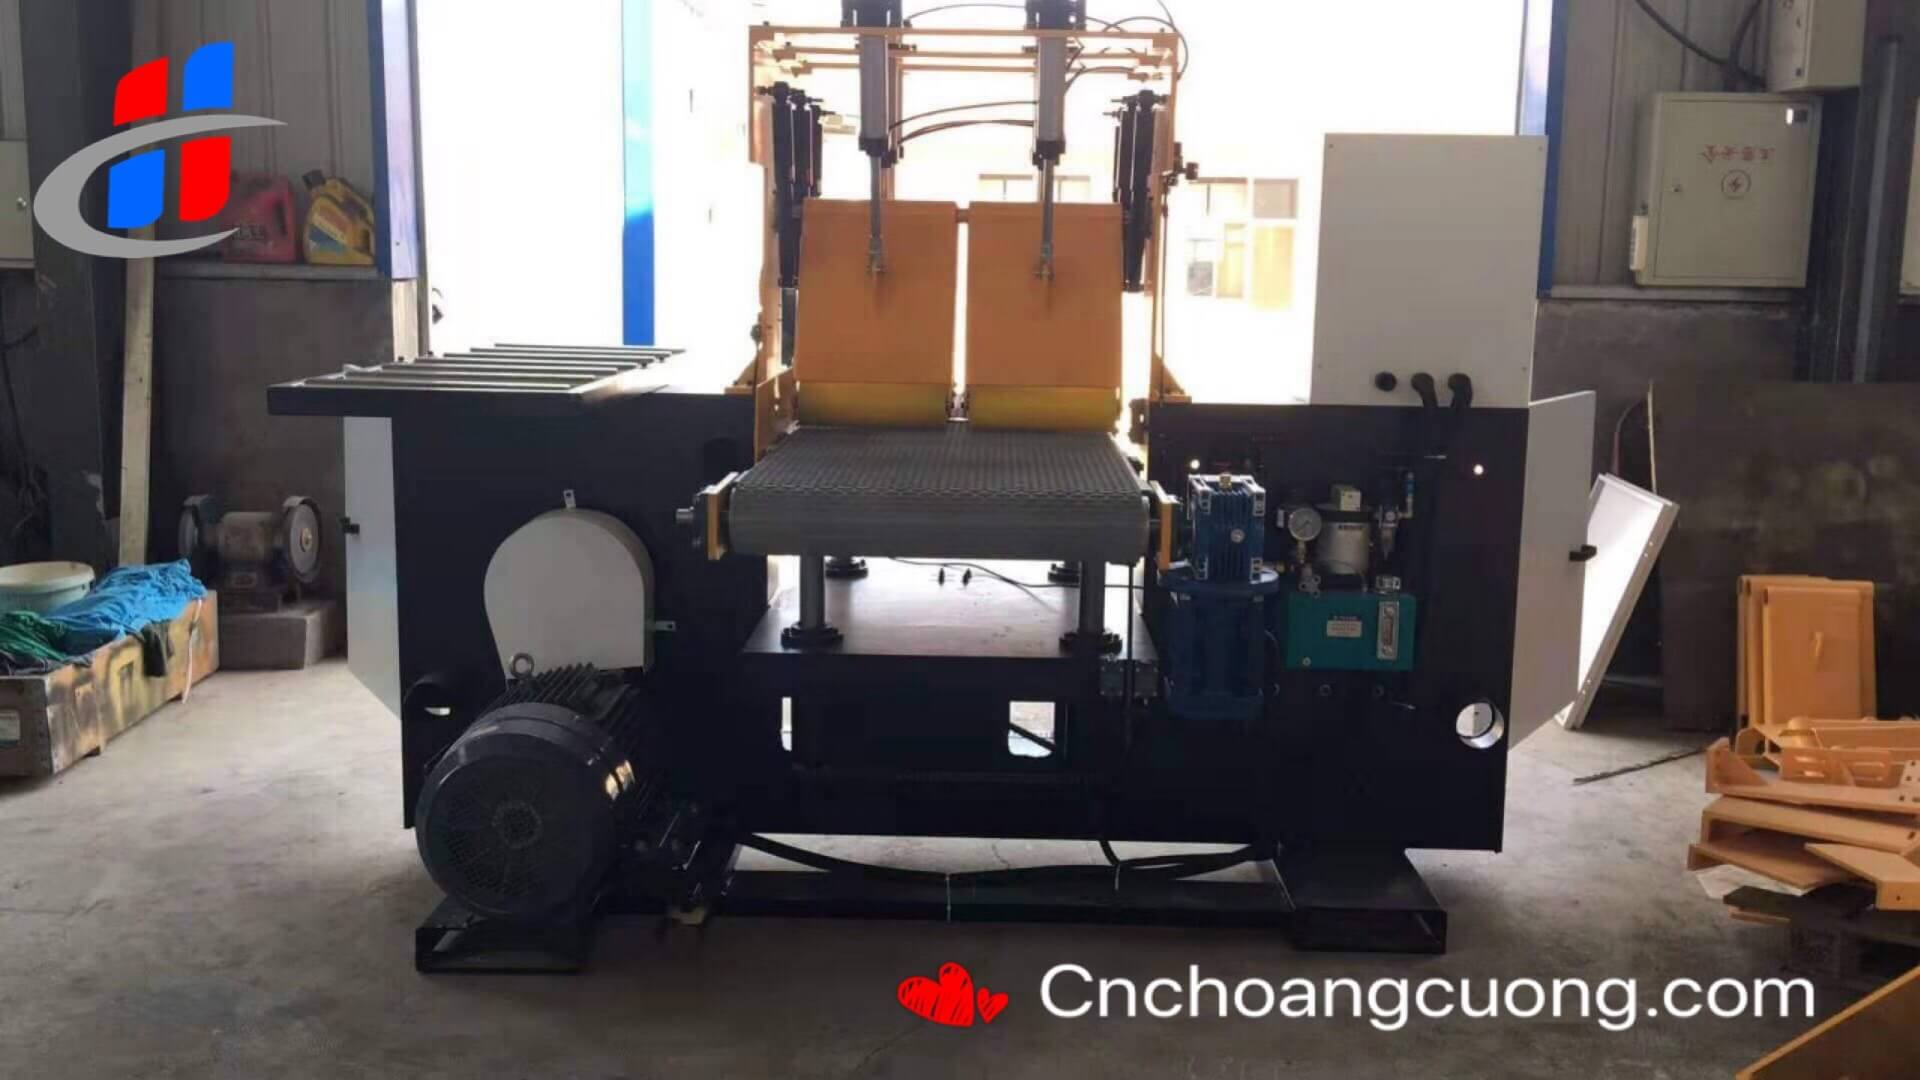 https://cnchoangcuong.com/?post_type=product&p=2371&preview=true